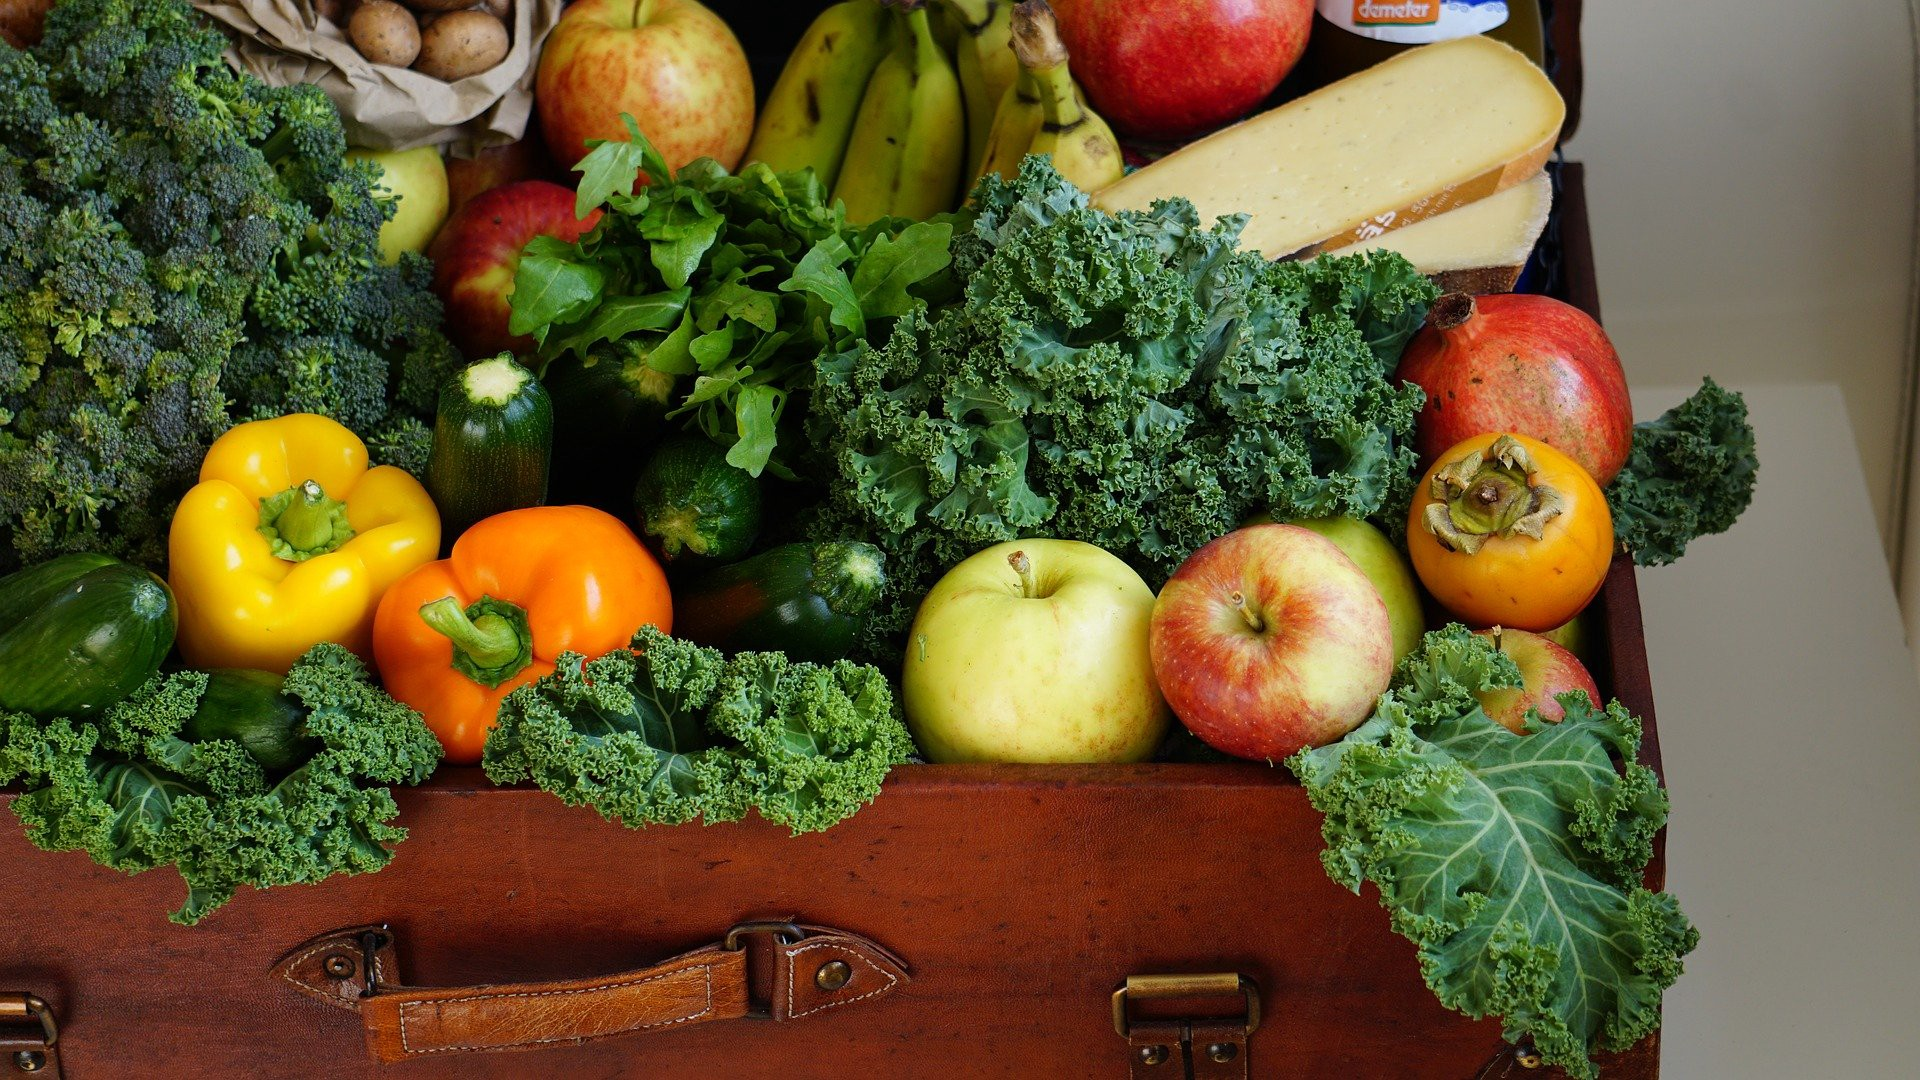 Healthy fruits and vegetables inside a suitcase